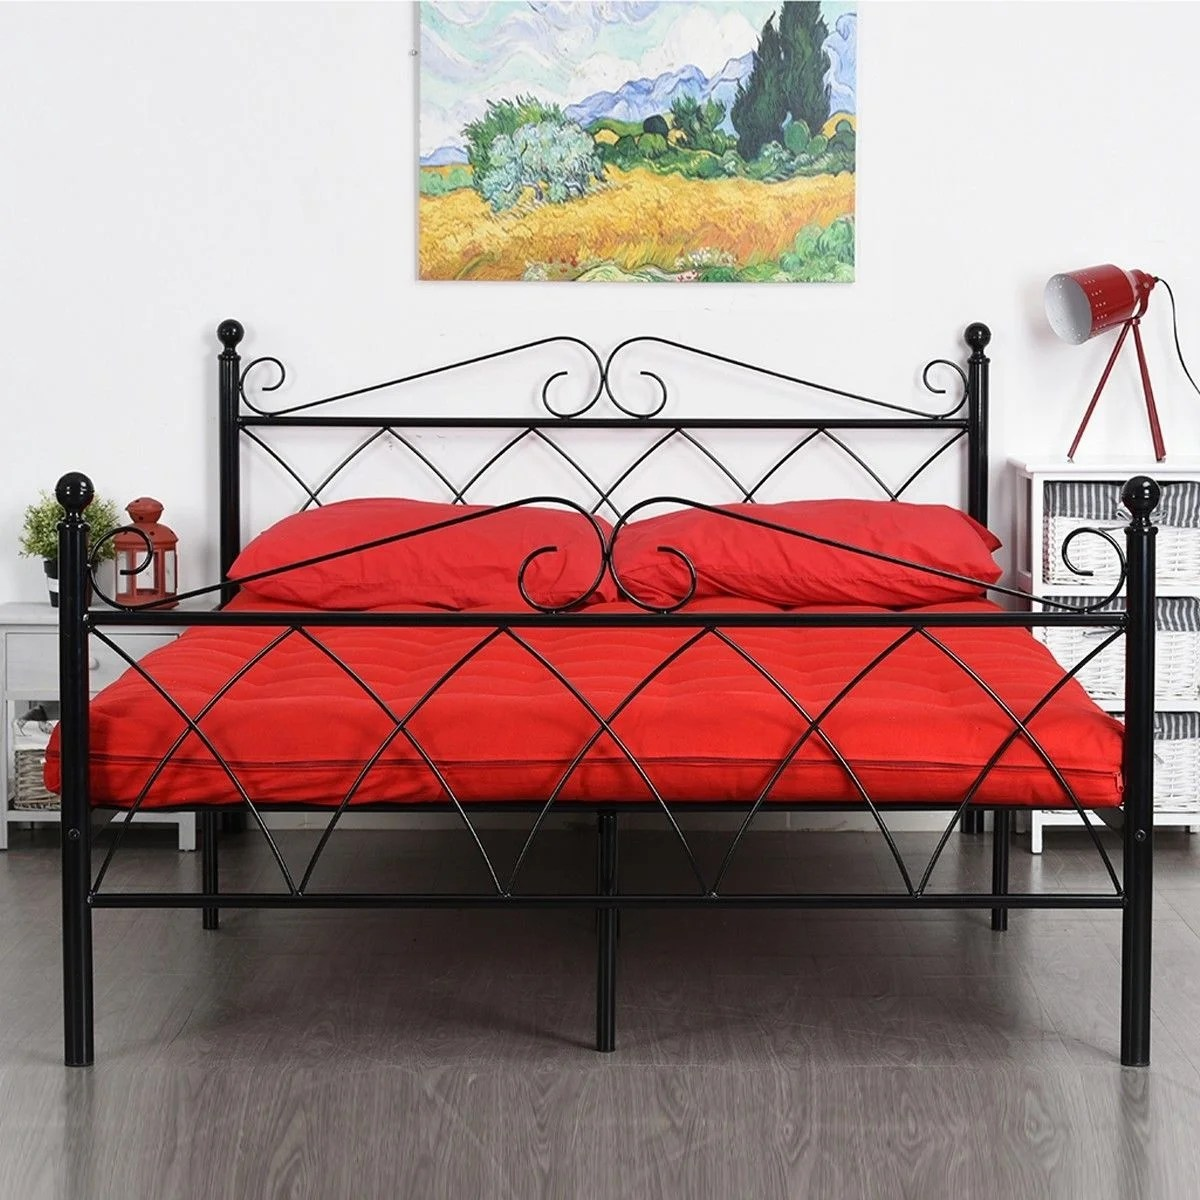 Under Bed Storage Frame Easy To Assemble Platform Metal Bed Frame Foundation With Headboard Under Bed Storage